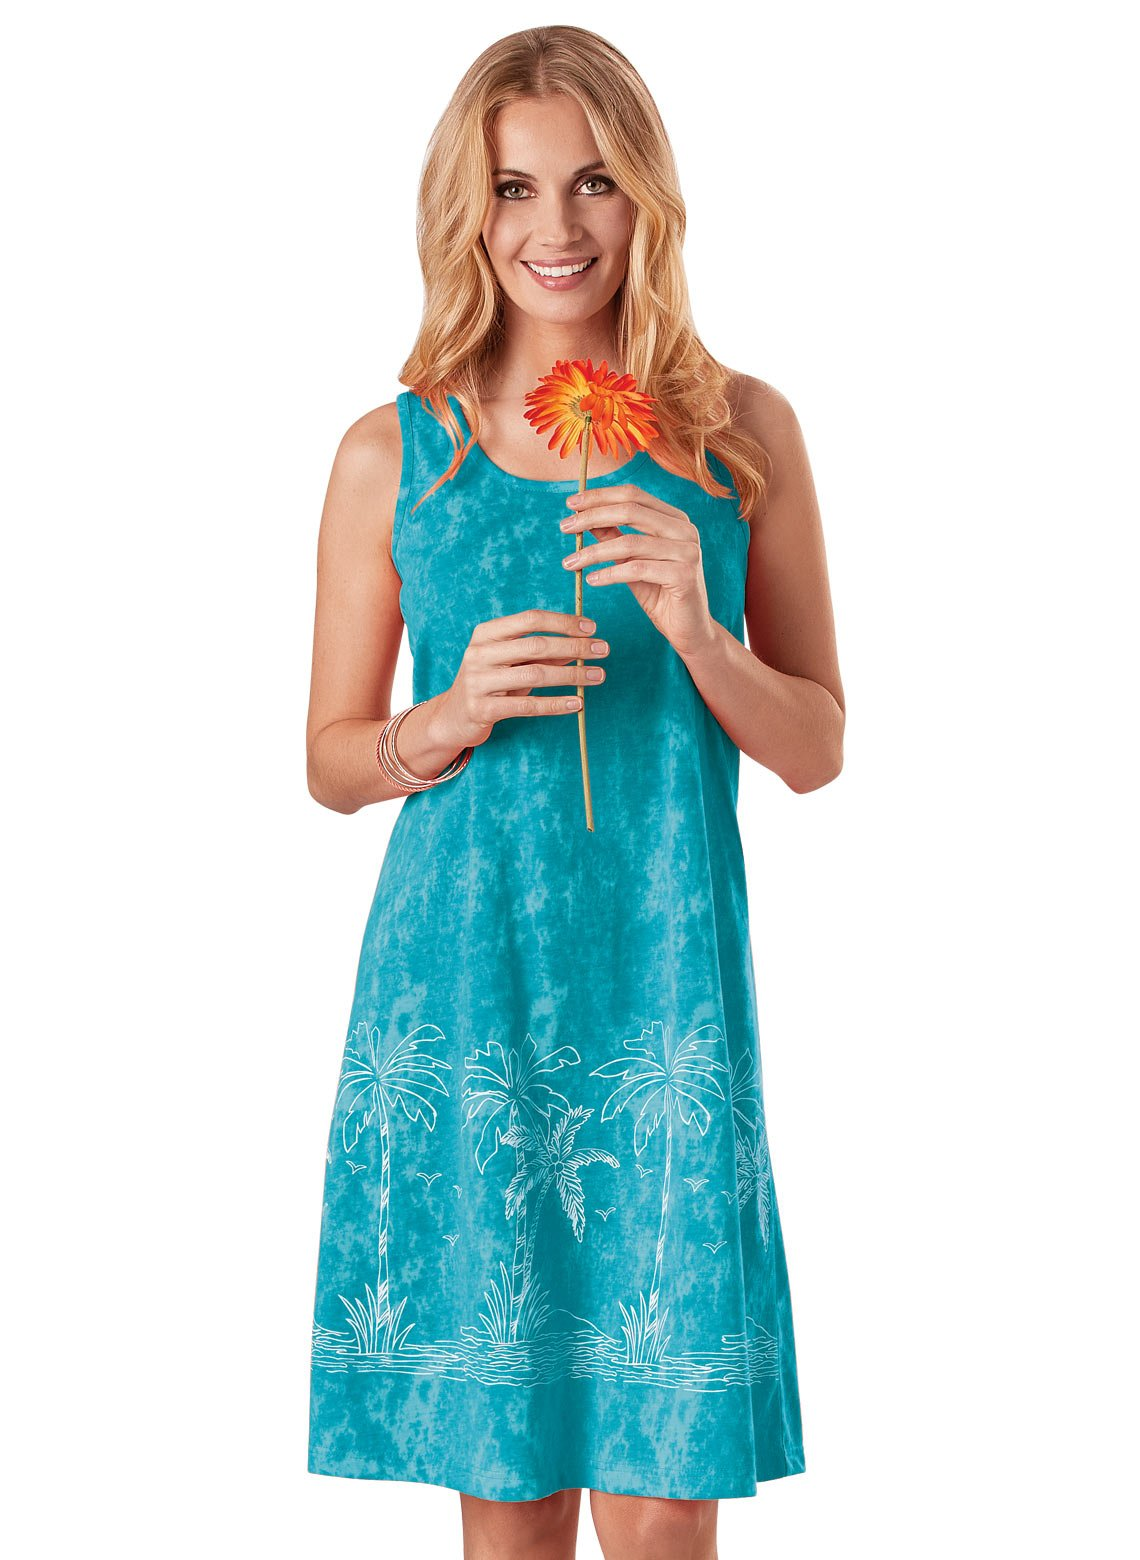 Carol Wright Gifts Dress Tropical Tank, Color Turquoise, Size Extra Large (3X), Turquoise, Size Extra Large (3X)